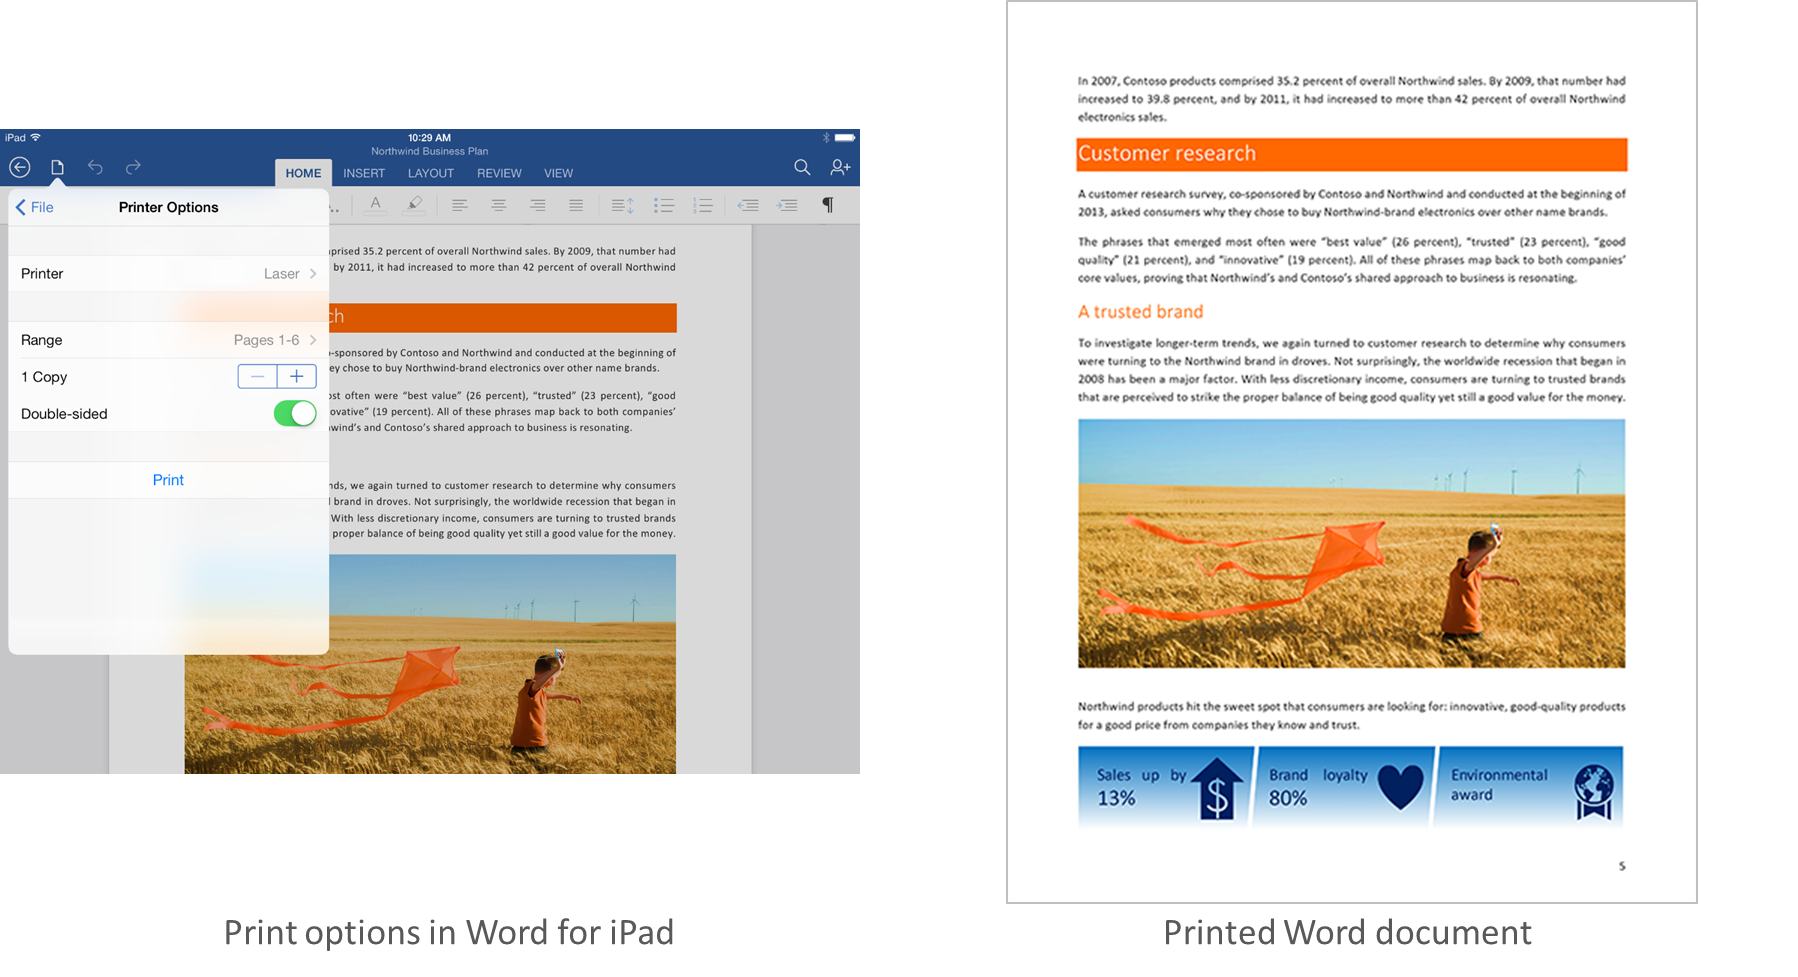 Word print options Microsoft updates Office for iPad with AirPrint support, AutoFit in Excel, and SmartGuides in PowerPoint